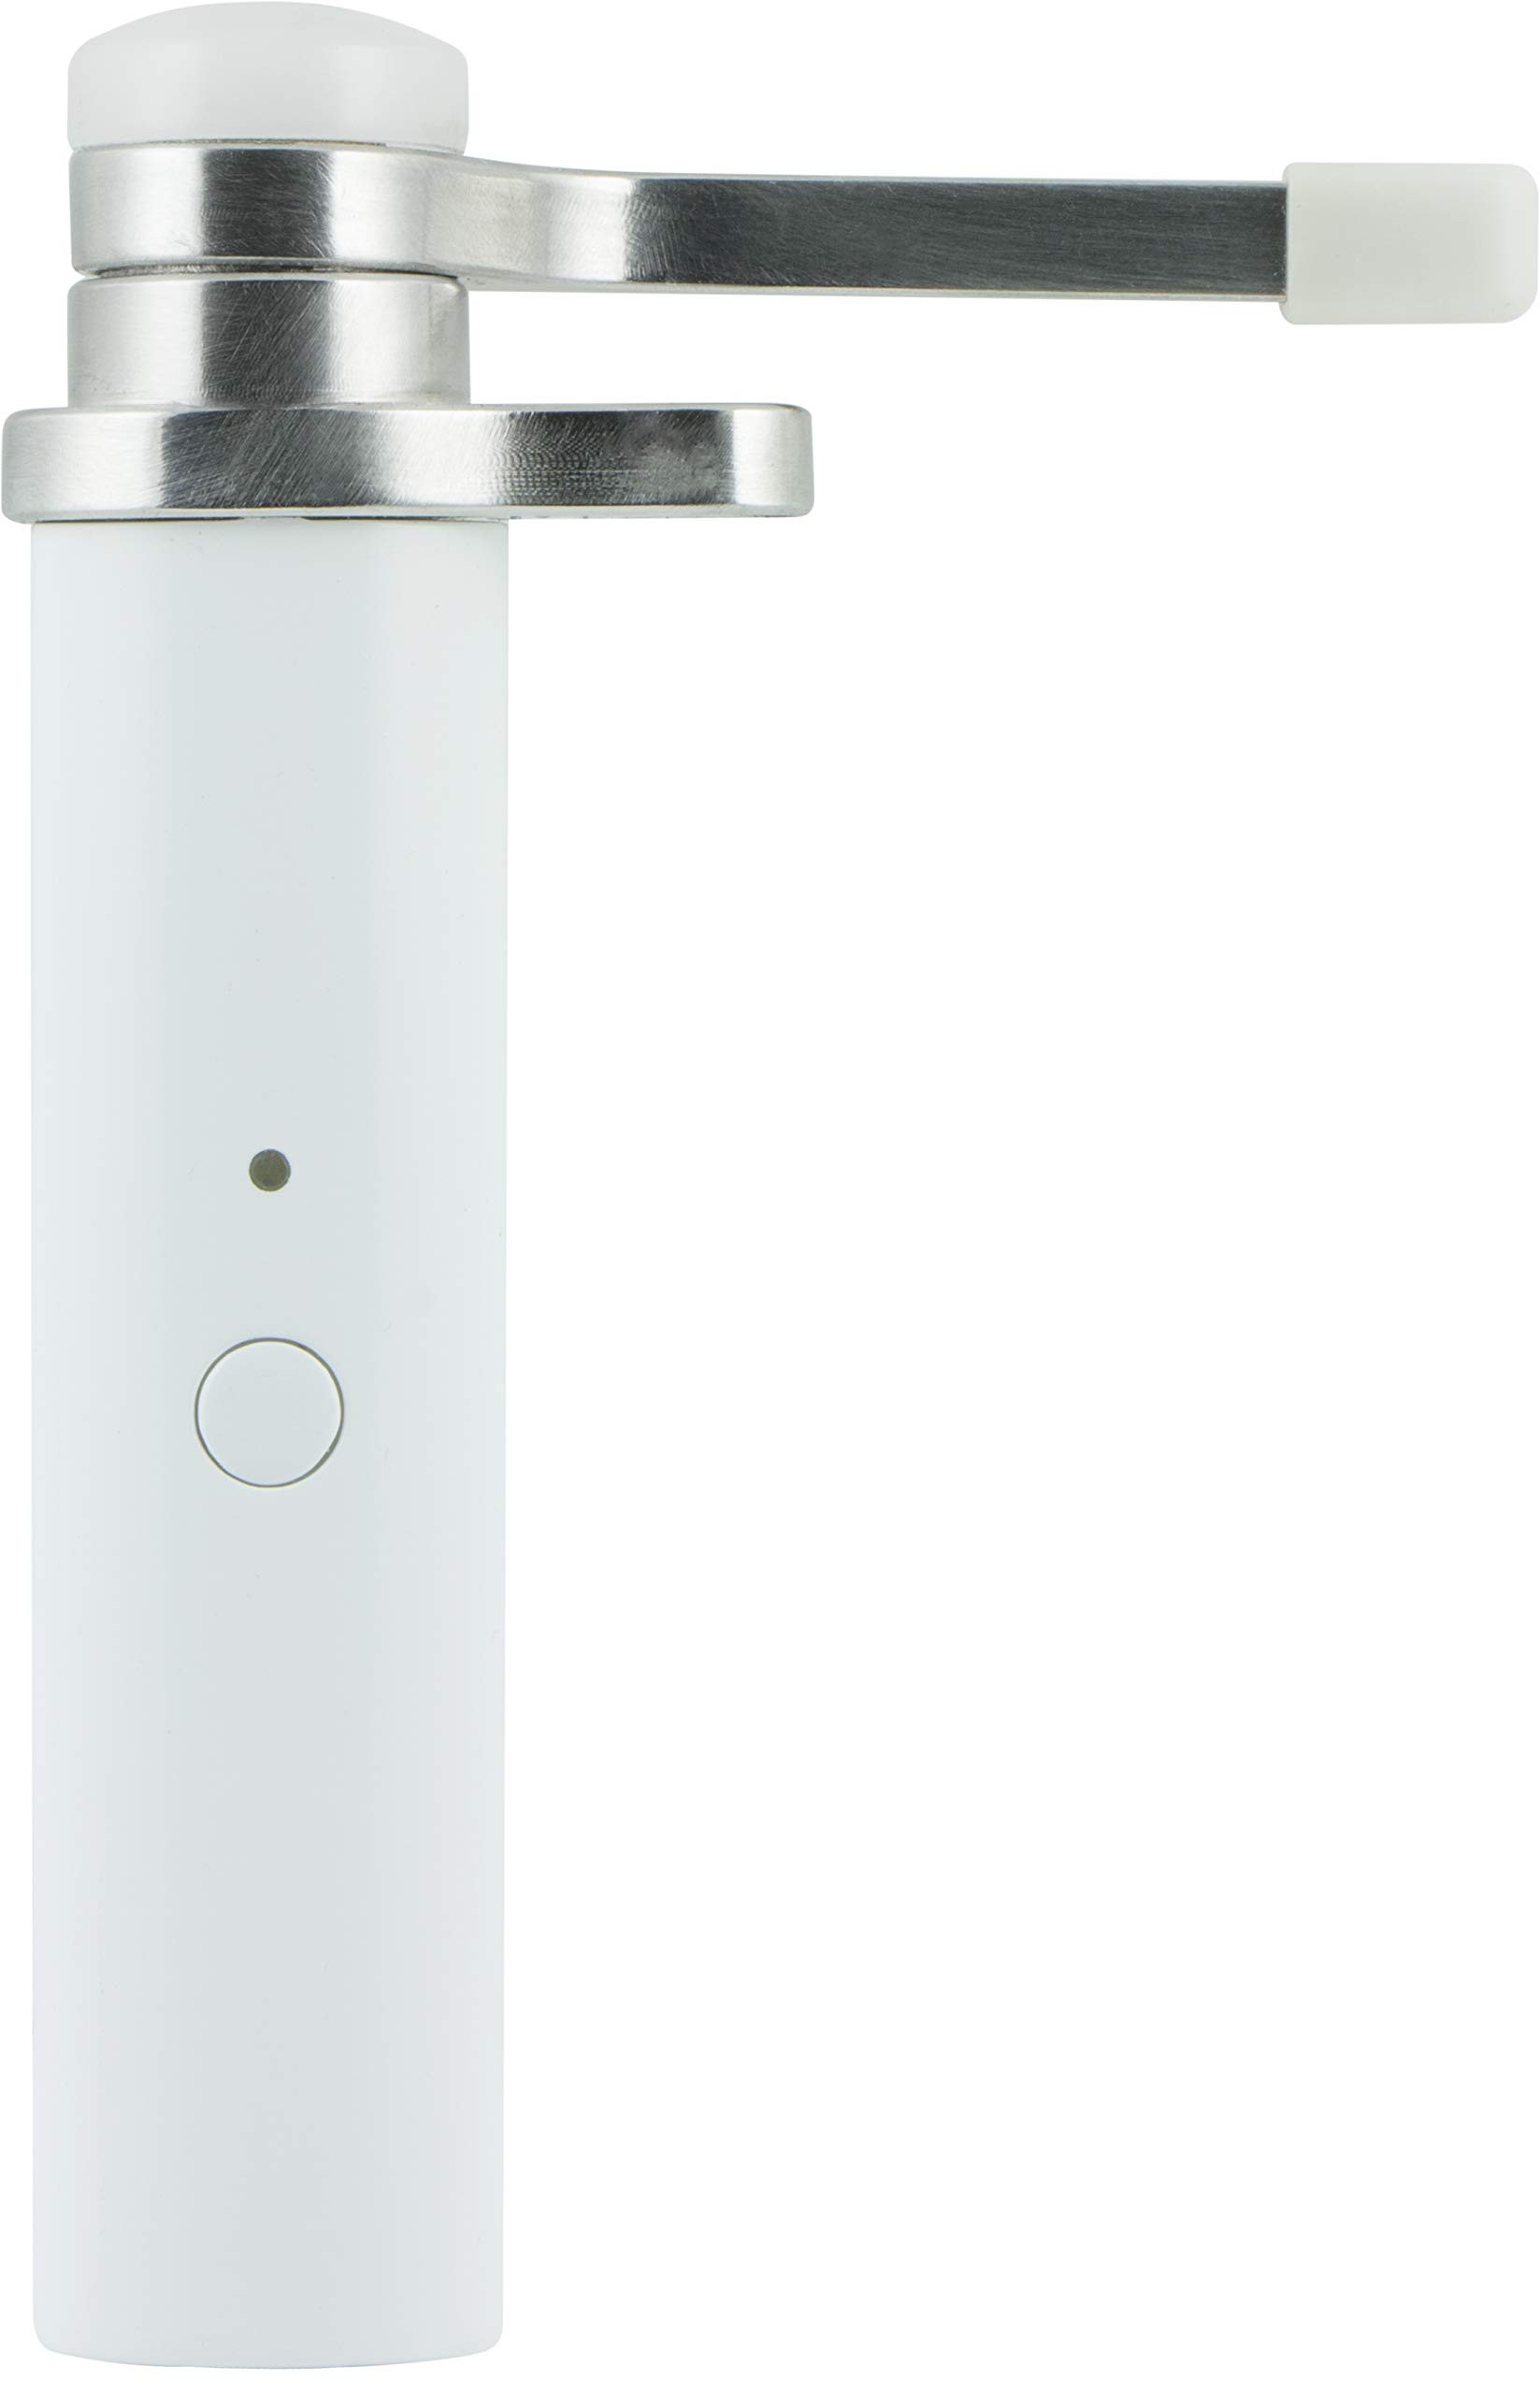 GE Enbrighten Z-Wave Plus Smart Pin Sensor, Attaches to Existing